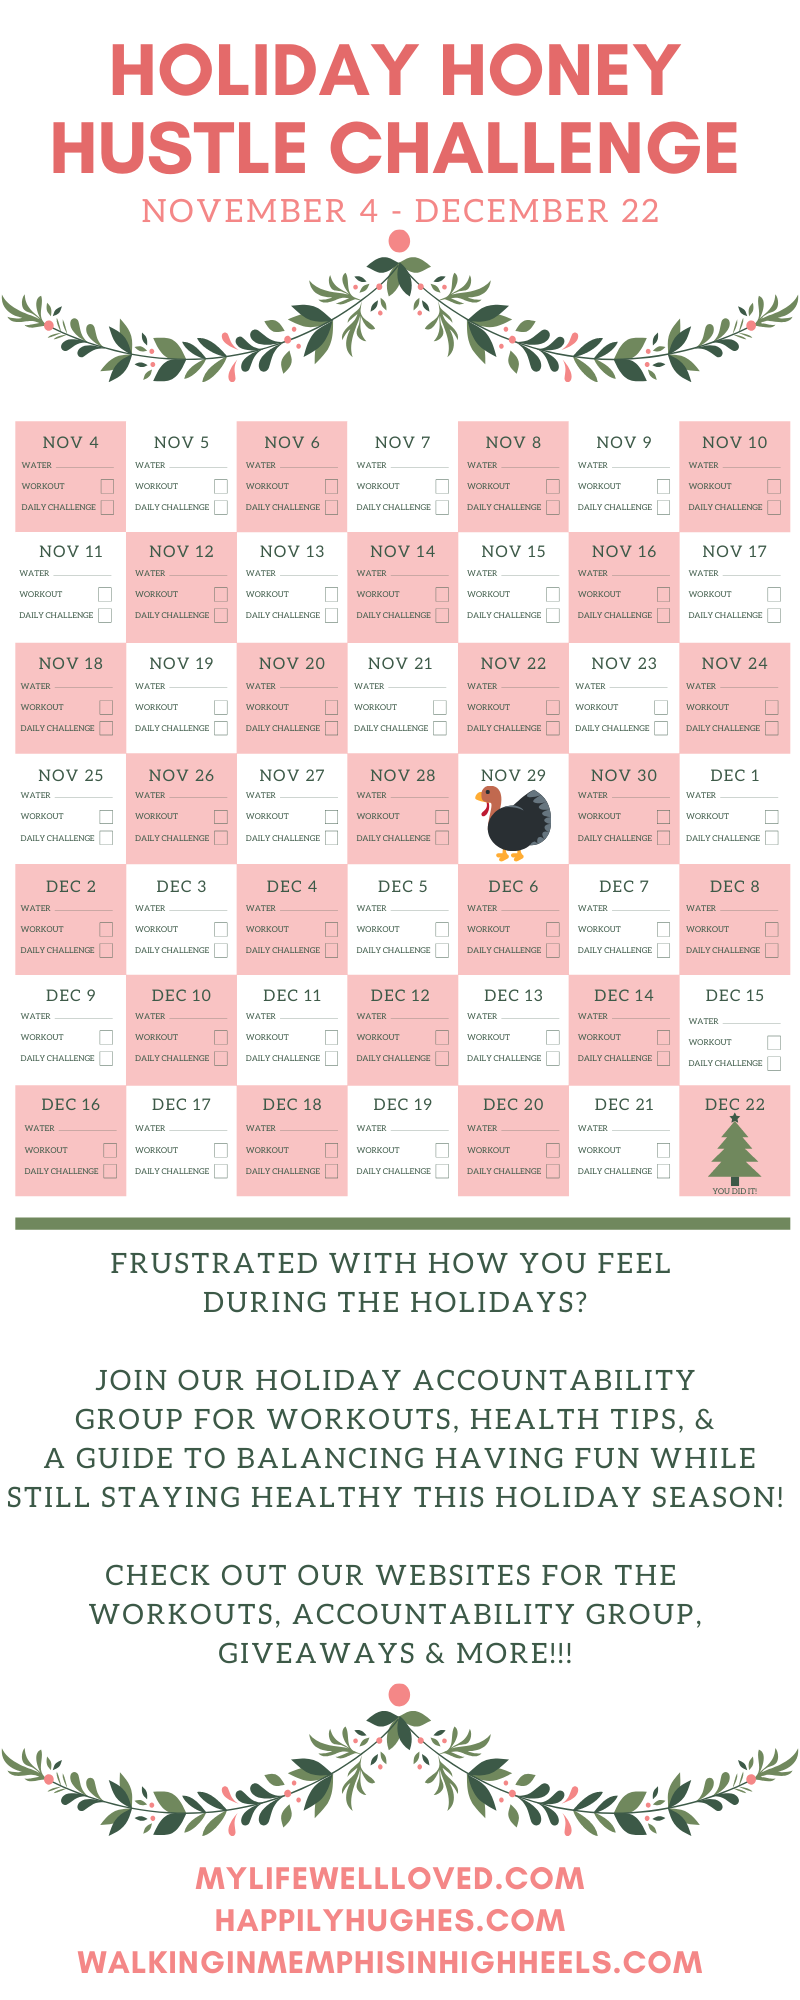 Holiday Honey Hustle Week 3: How to Stay Motivated to Workout During the Holiday Season by Healthy Lifestyle blogger, Heather Brown // My Life Well Loved